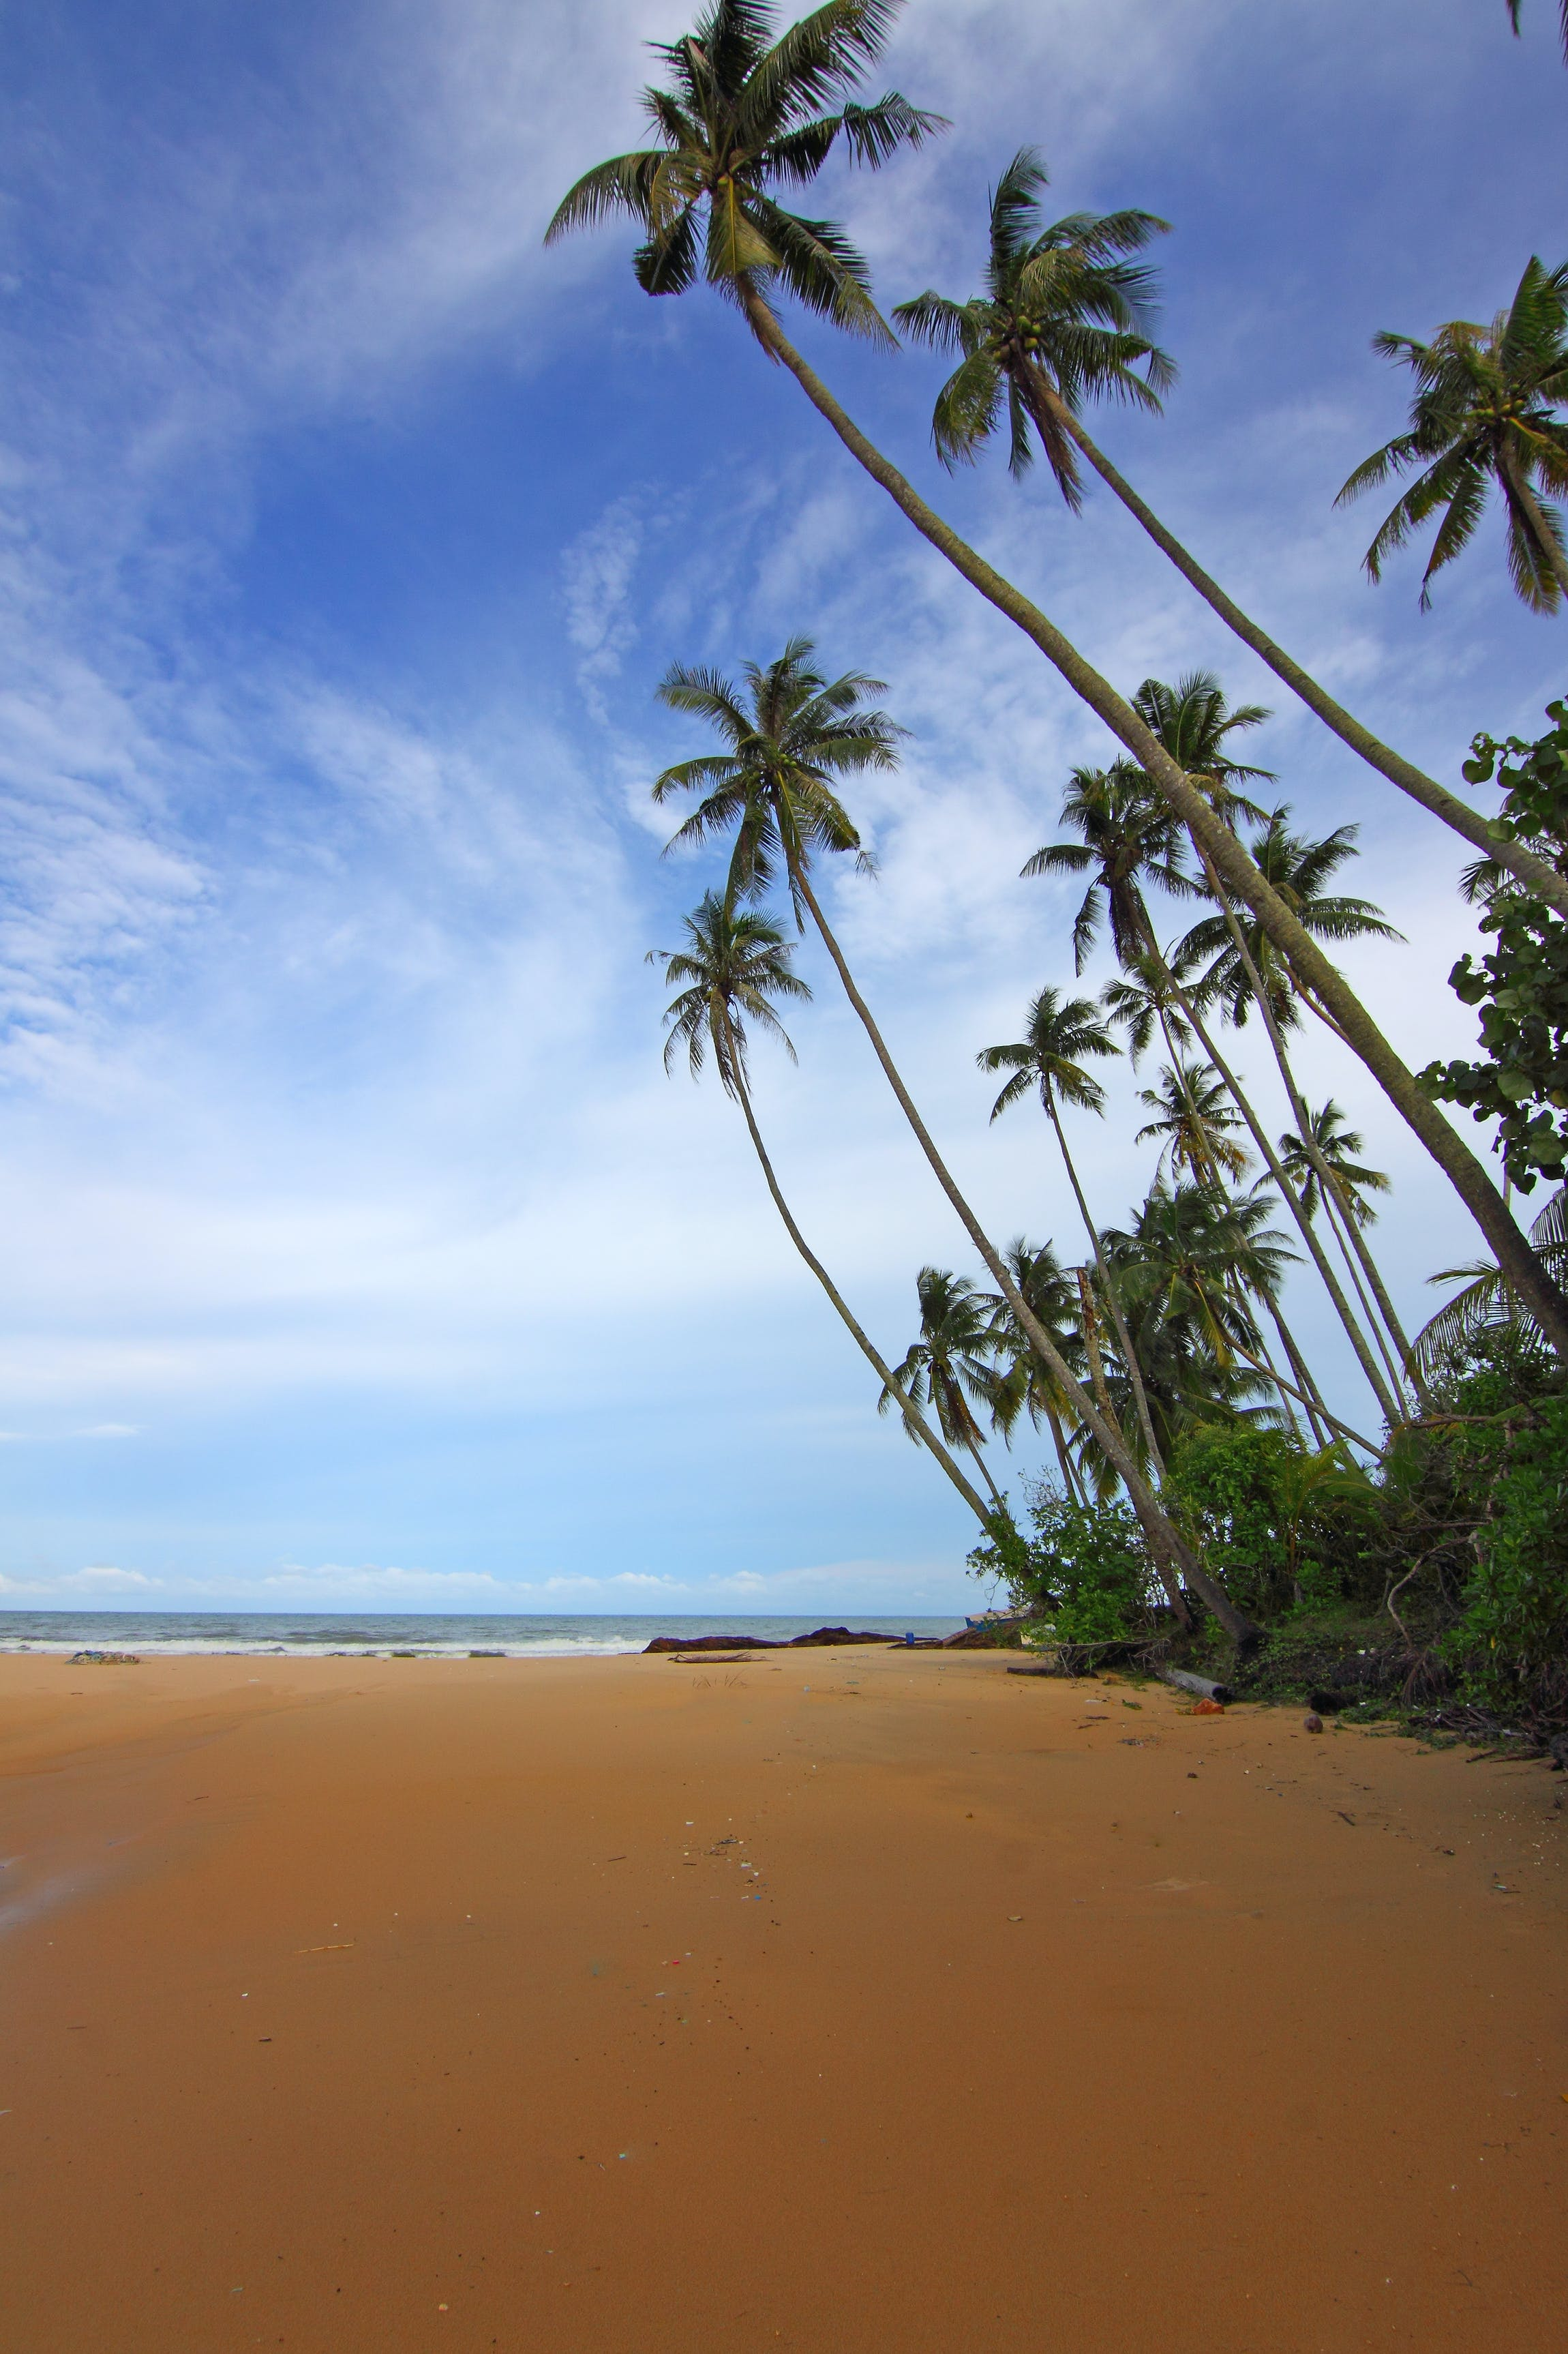 beach, clouds, coconut trees